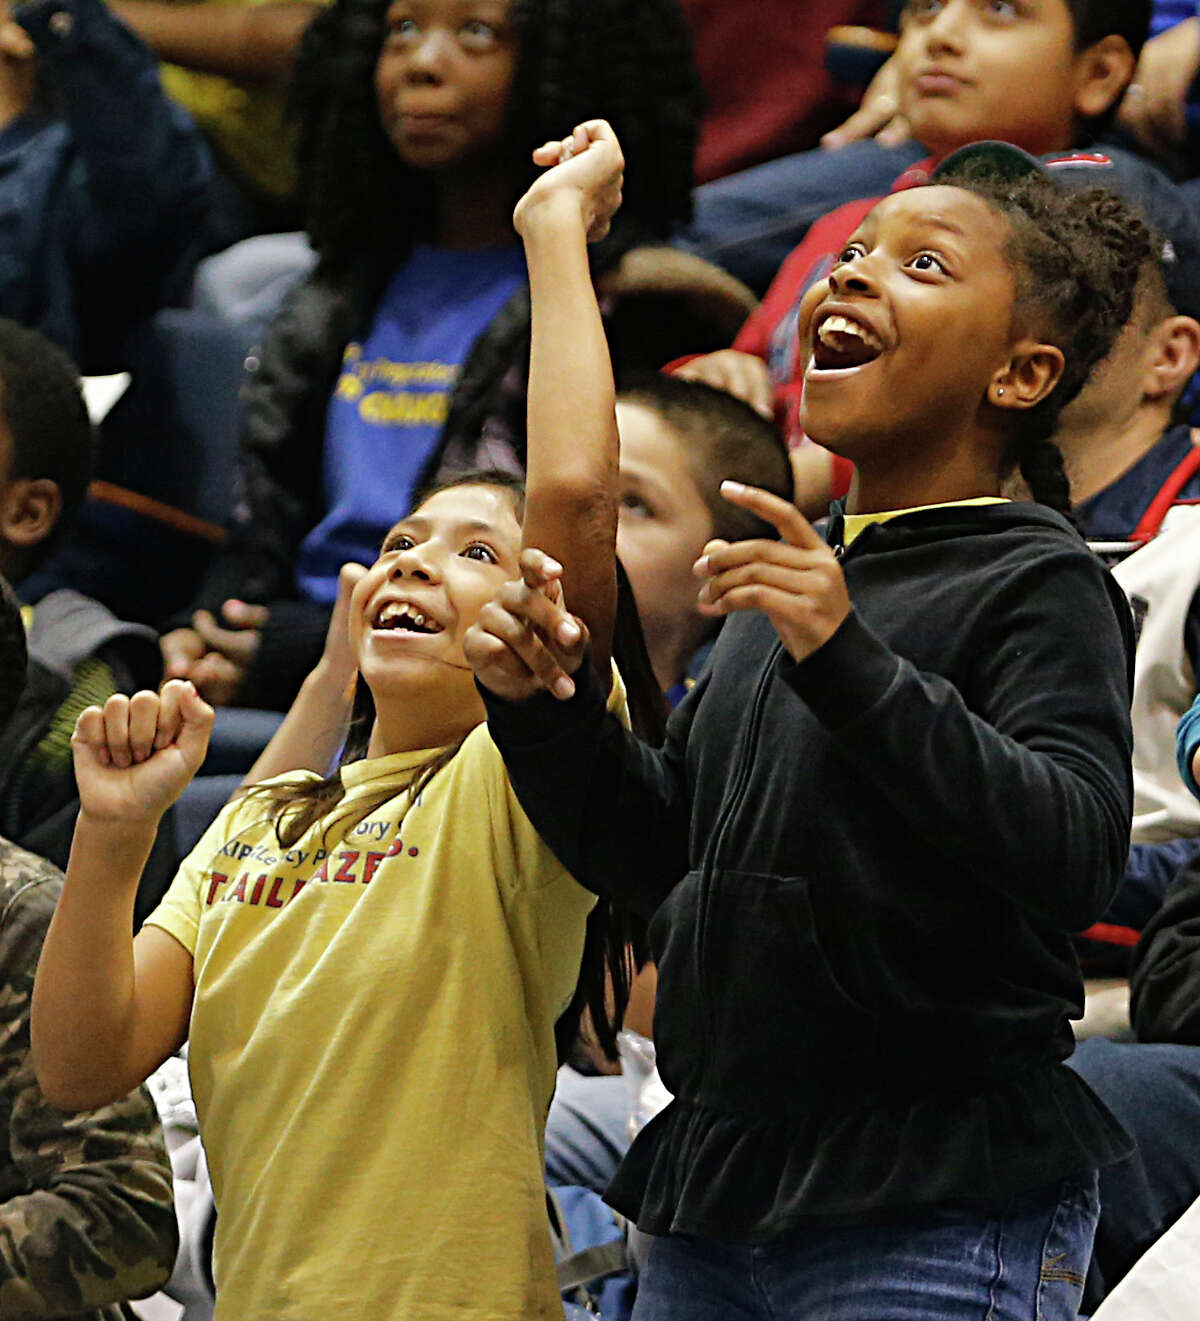 Houston Independent School District students during a field trip to the Rice University and University of St. Thomas men's college basketball game at Tudor Fieldhouse Thursday, Dec. 17, 2015, in Houston.